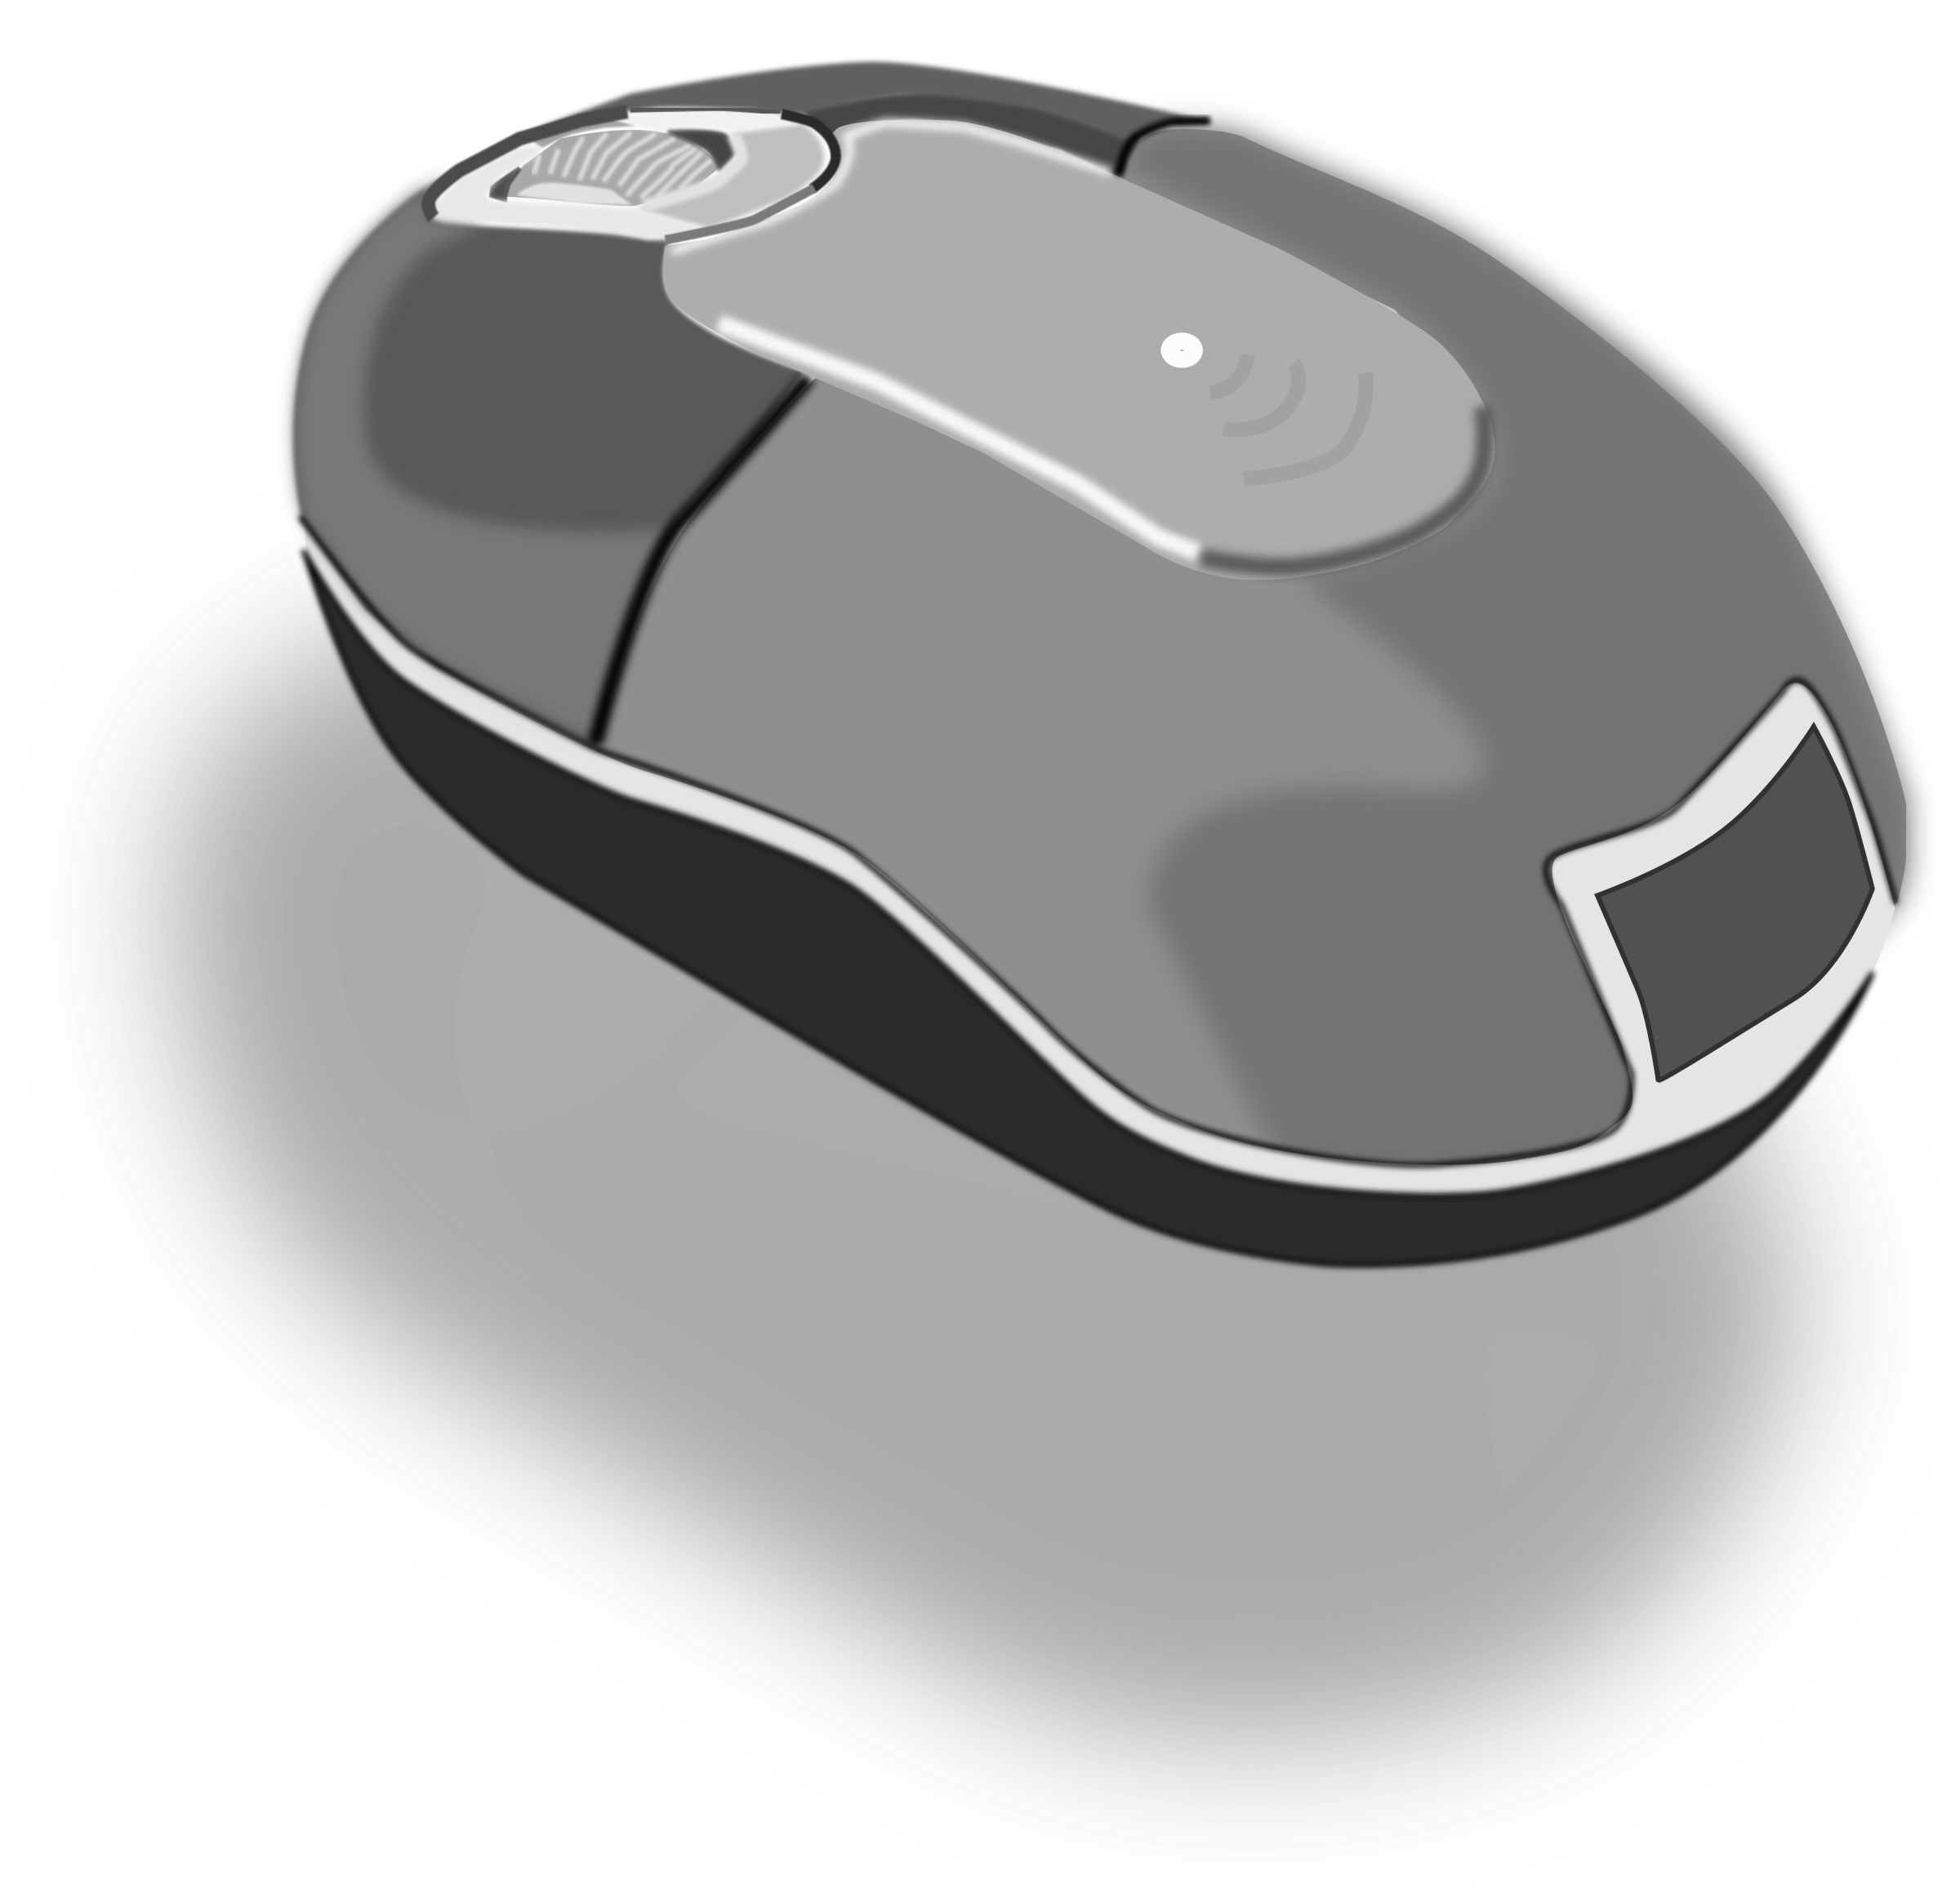 Mouse hardware icons png. Computer clip art computer component